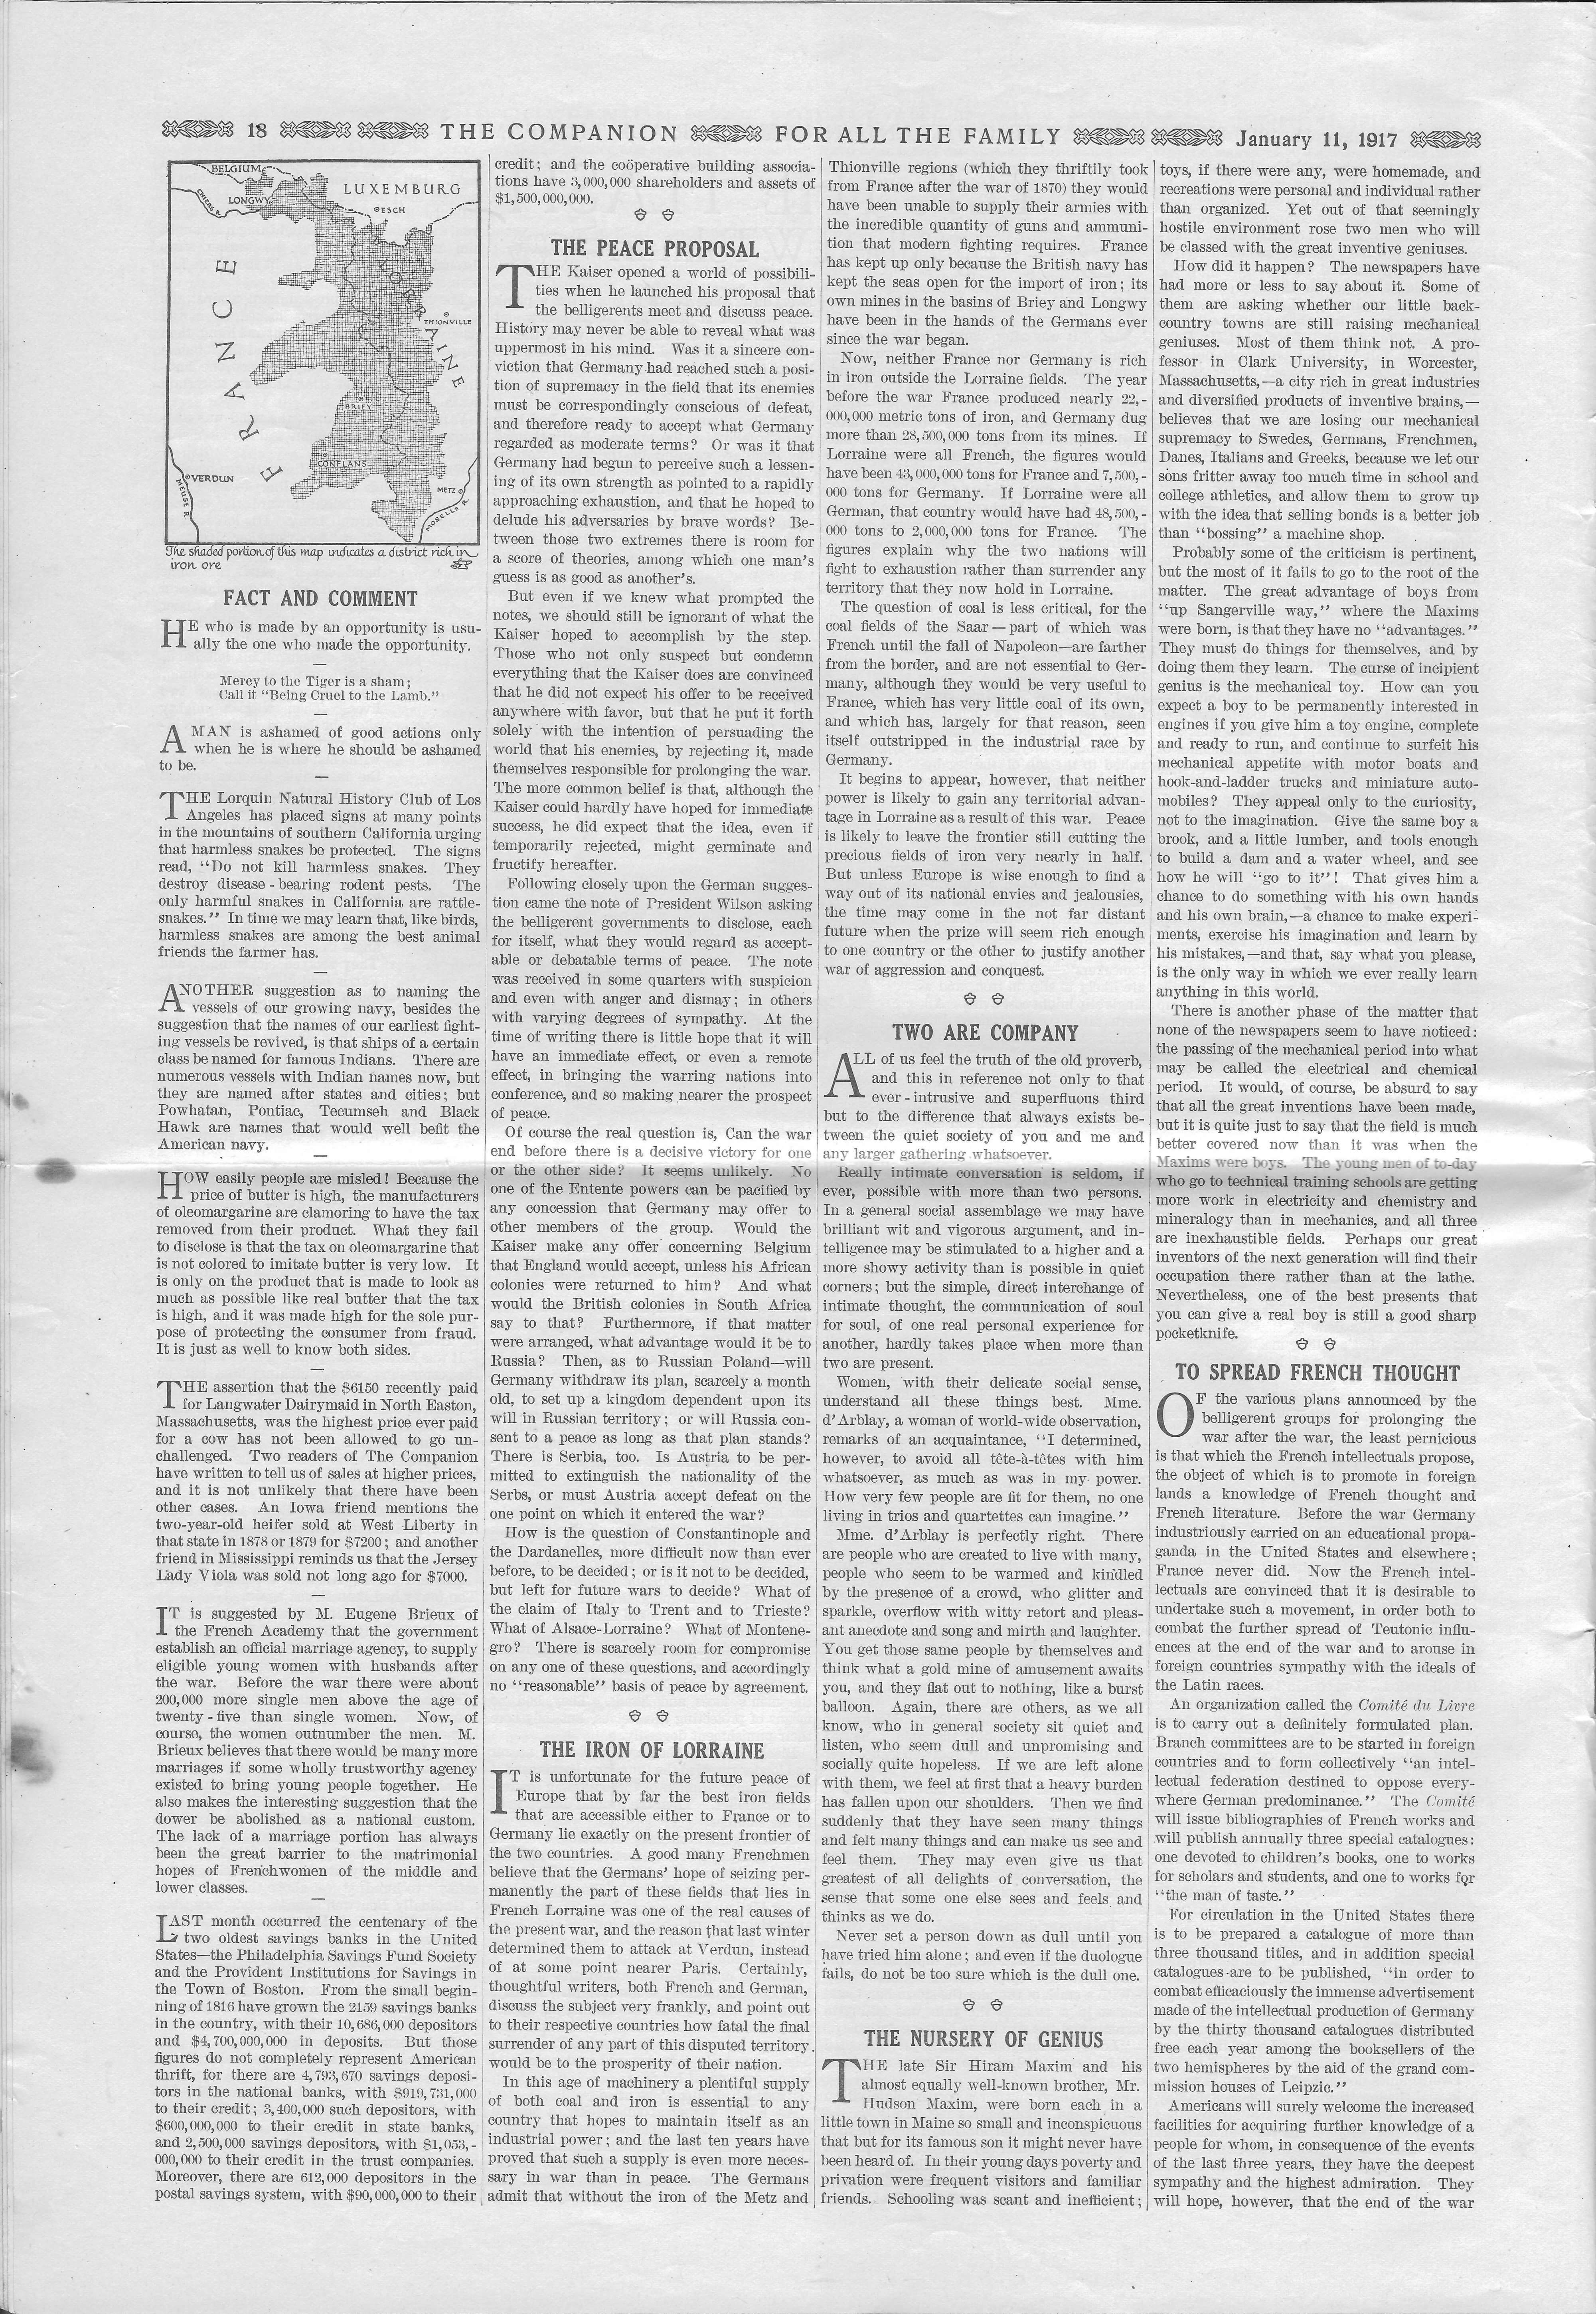 The Youth's Companion - January 11, 1917 - Page 18